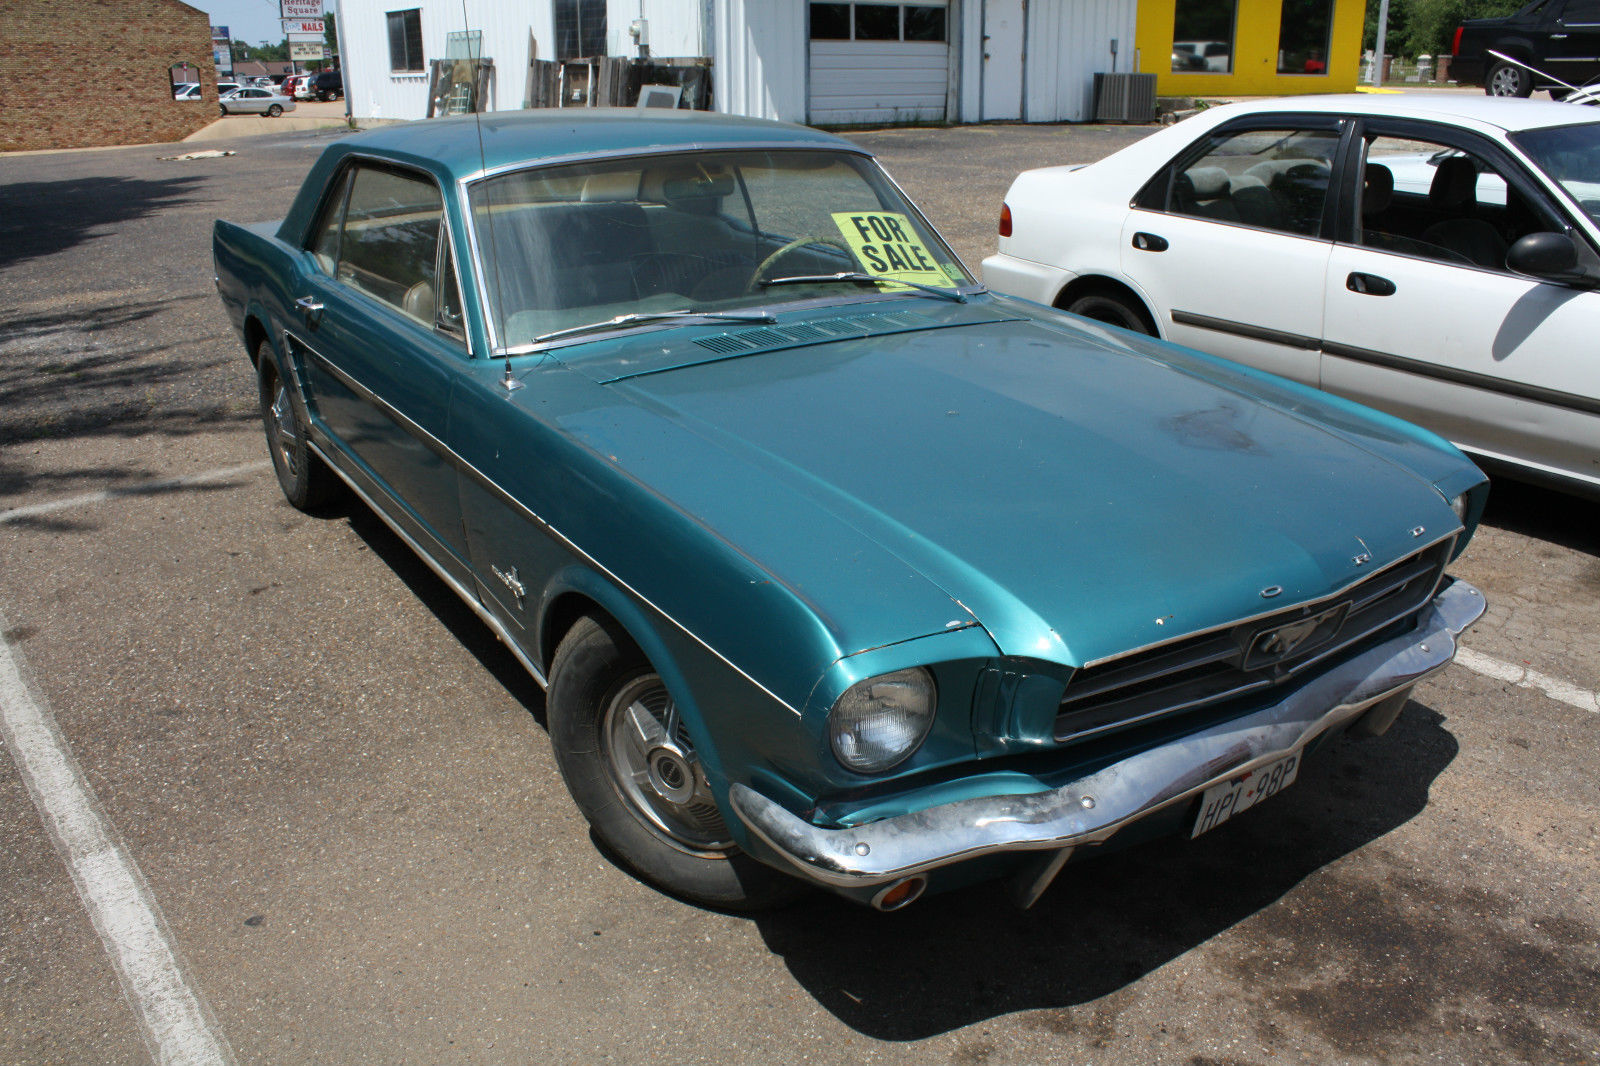 Sales Tax On Classic Cars In Texas